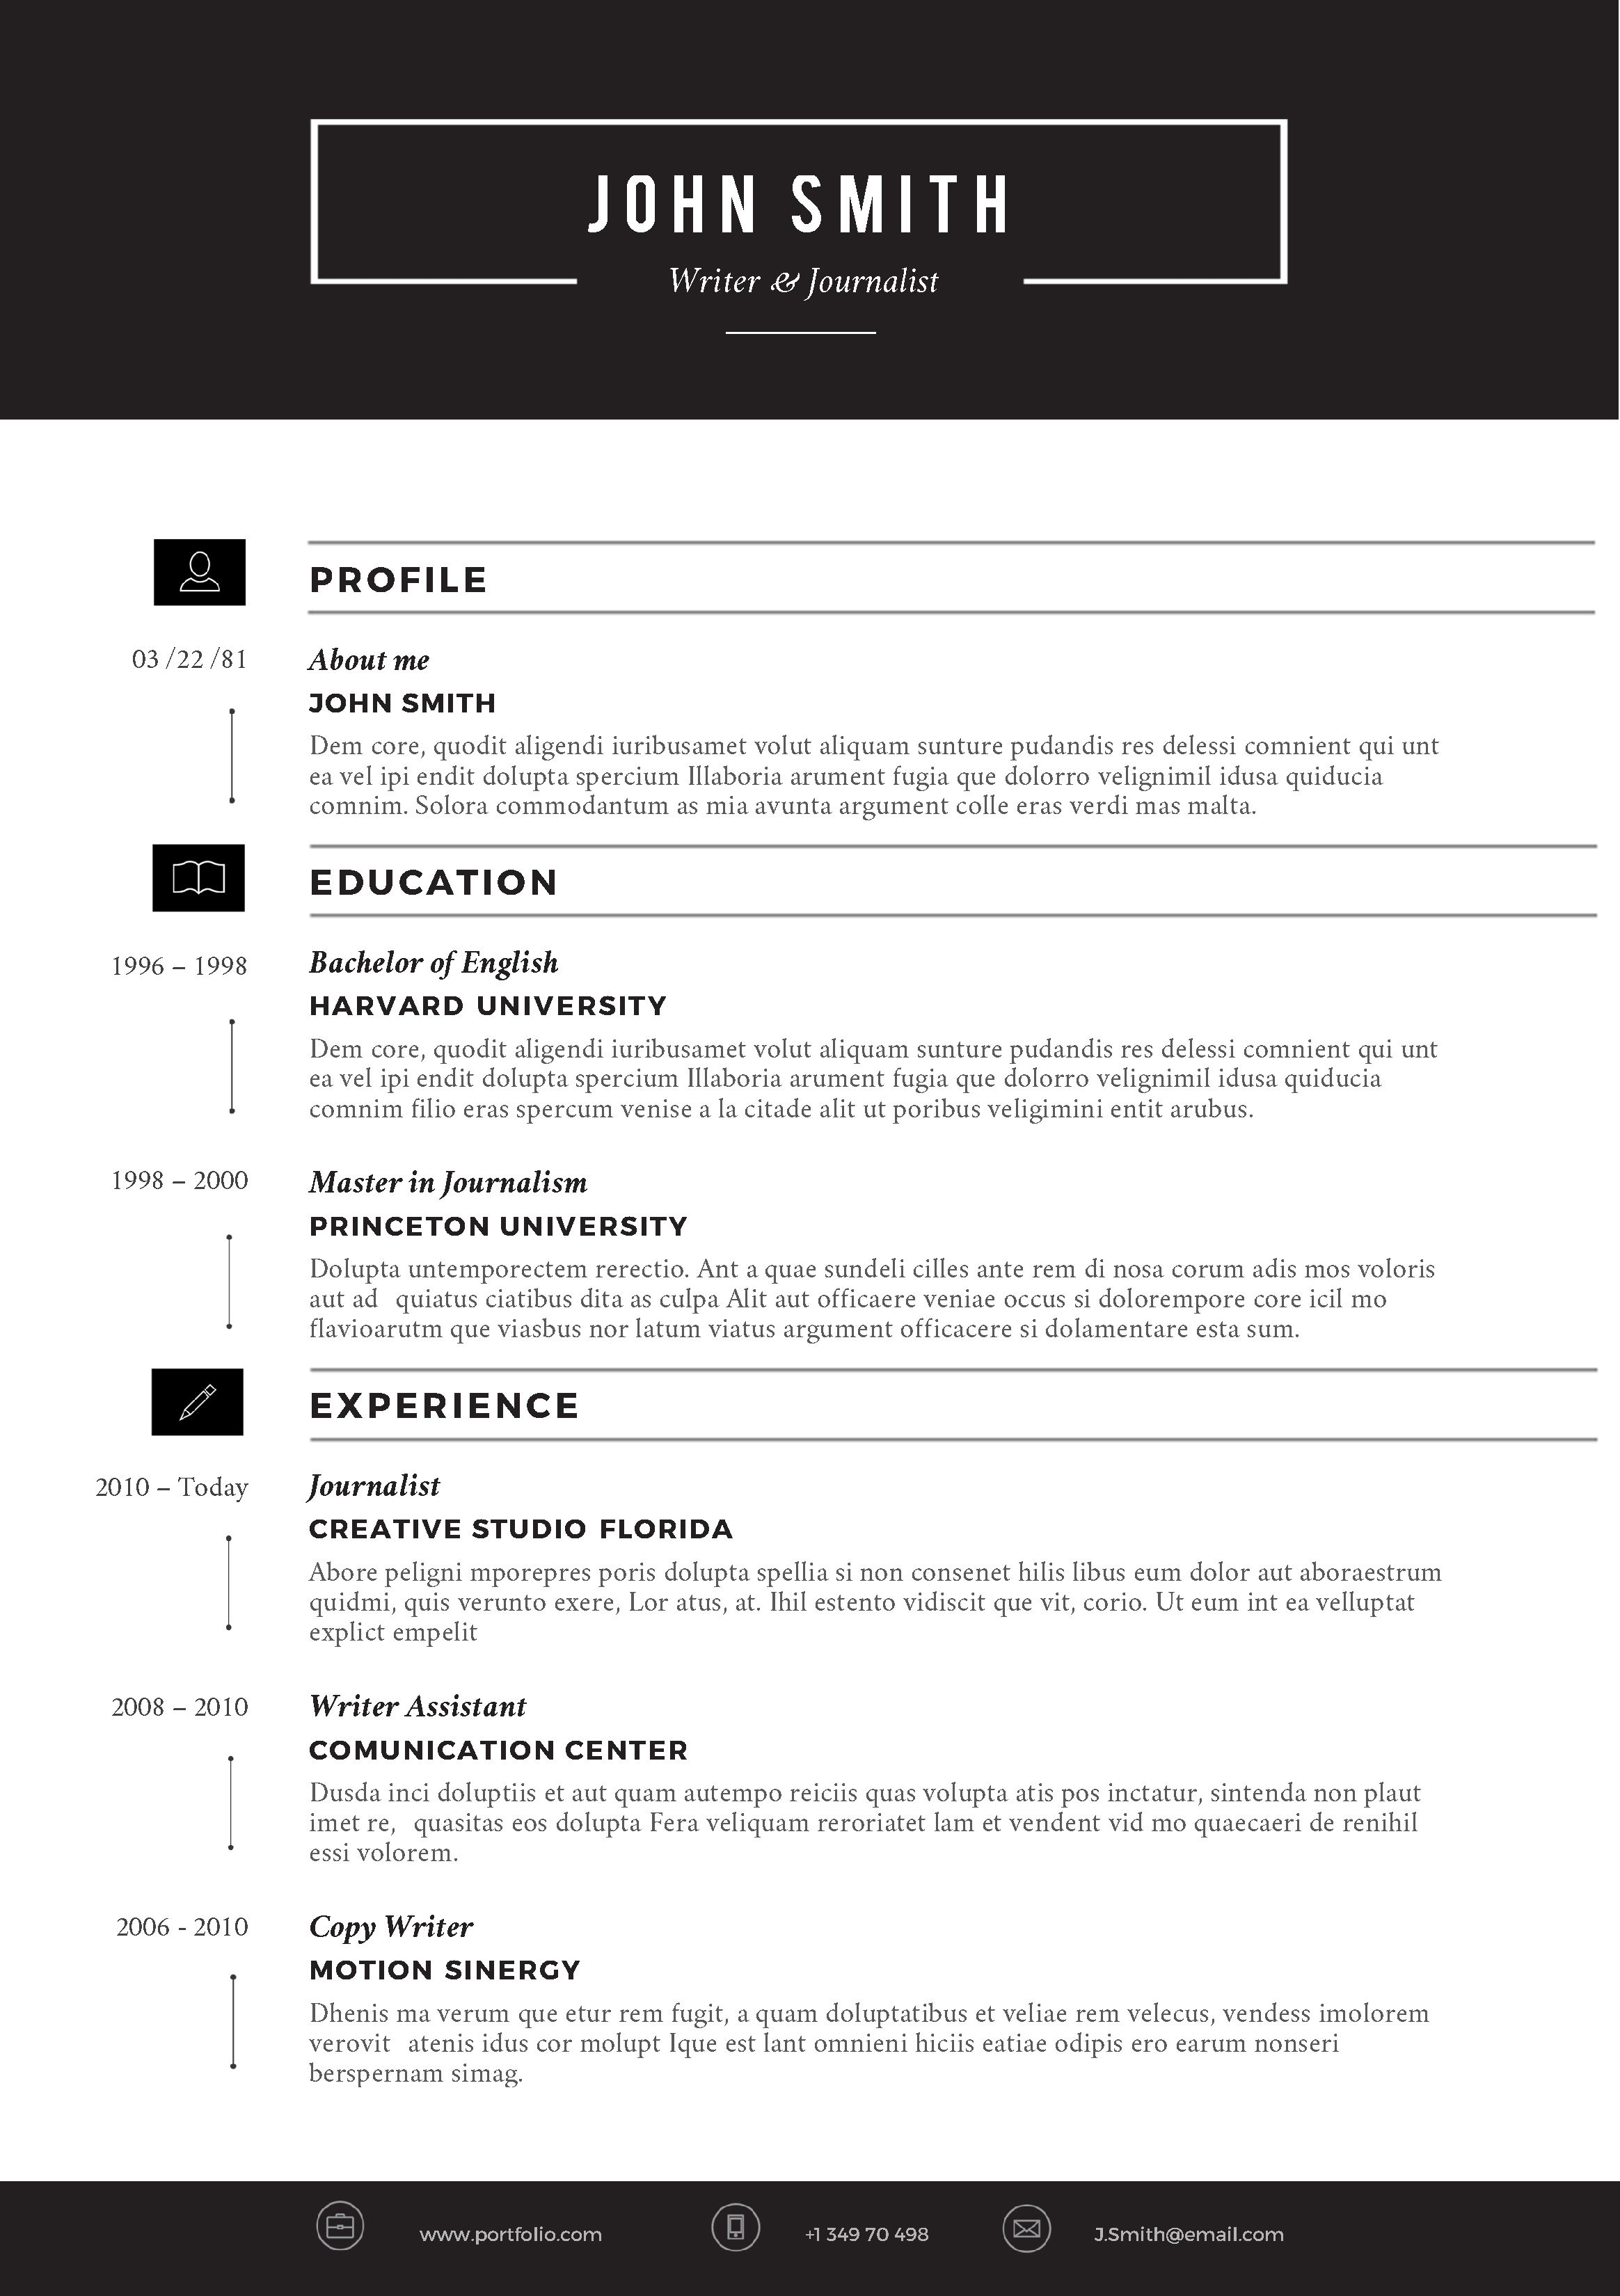 Microsoft word sleek resume template 1 jobs standard microsoft word sleek resume template 1 maxwellsz